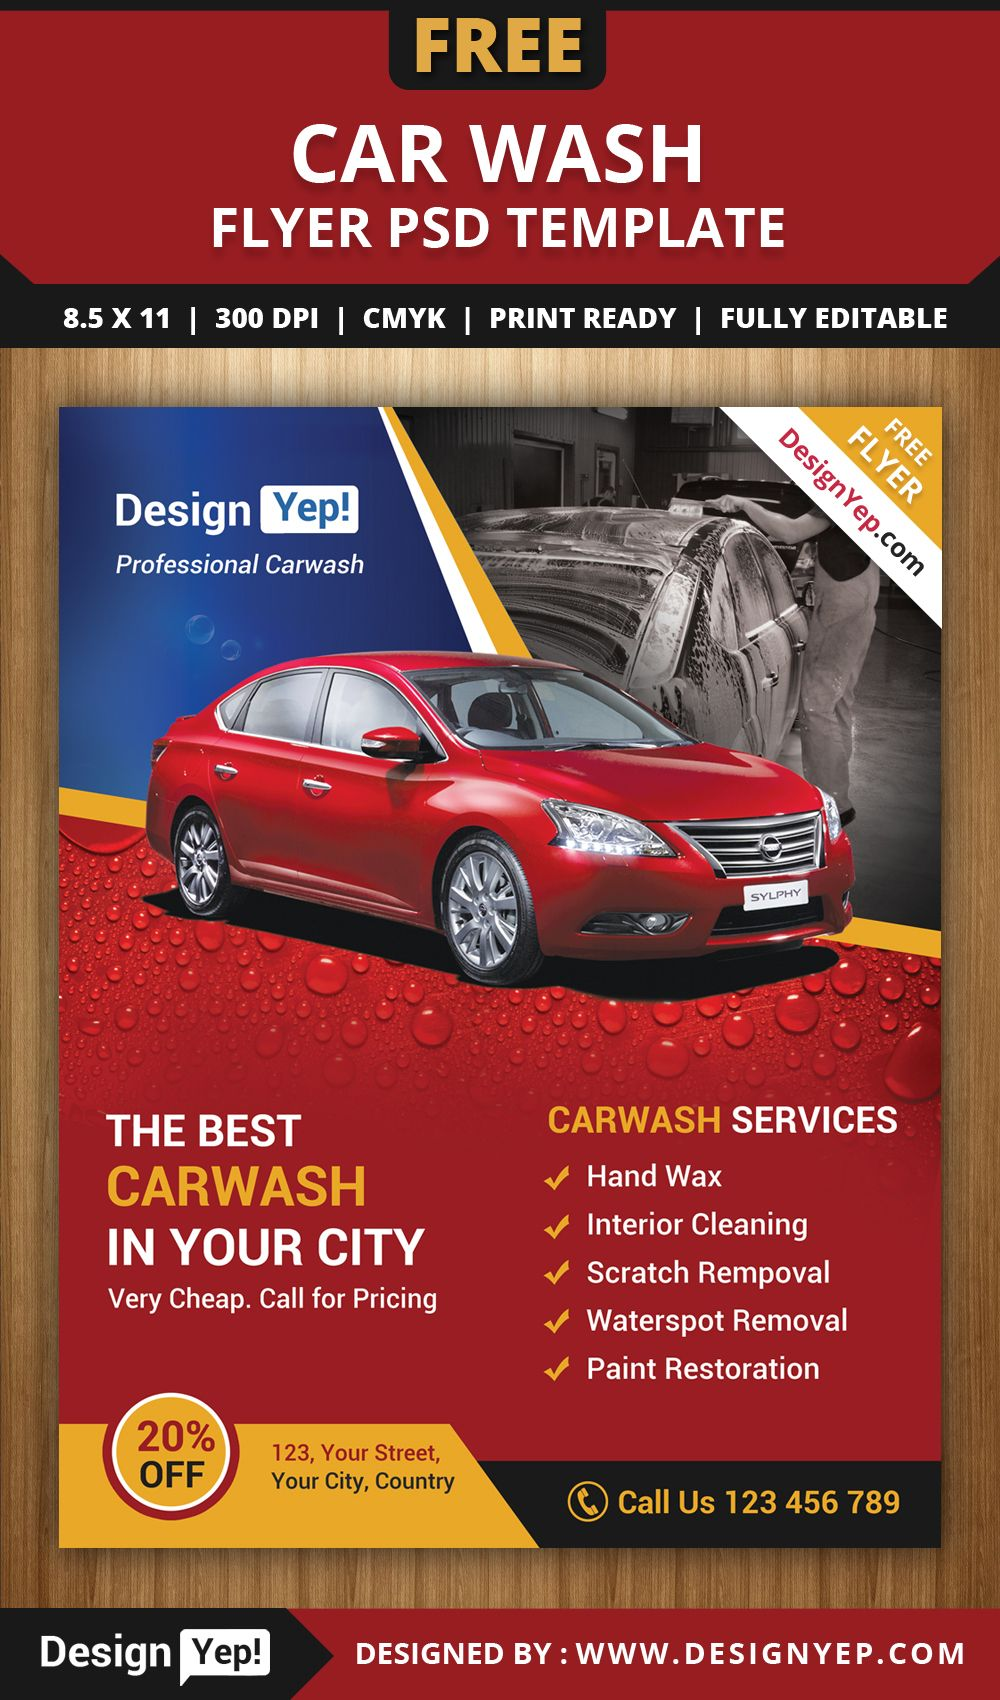 free car wash flyer psd template 3232 designyep